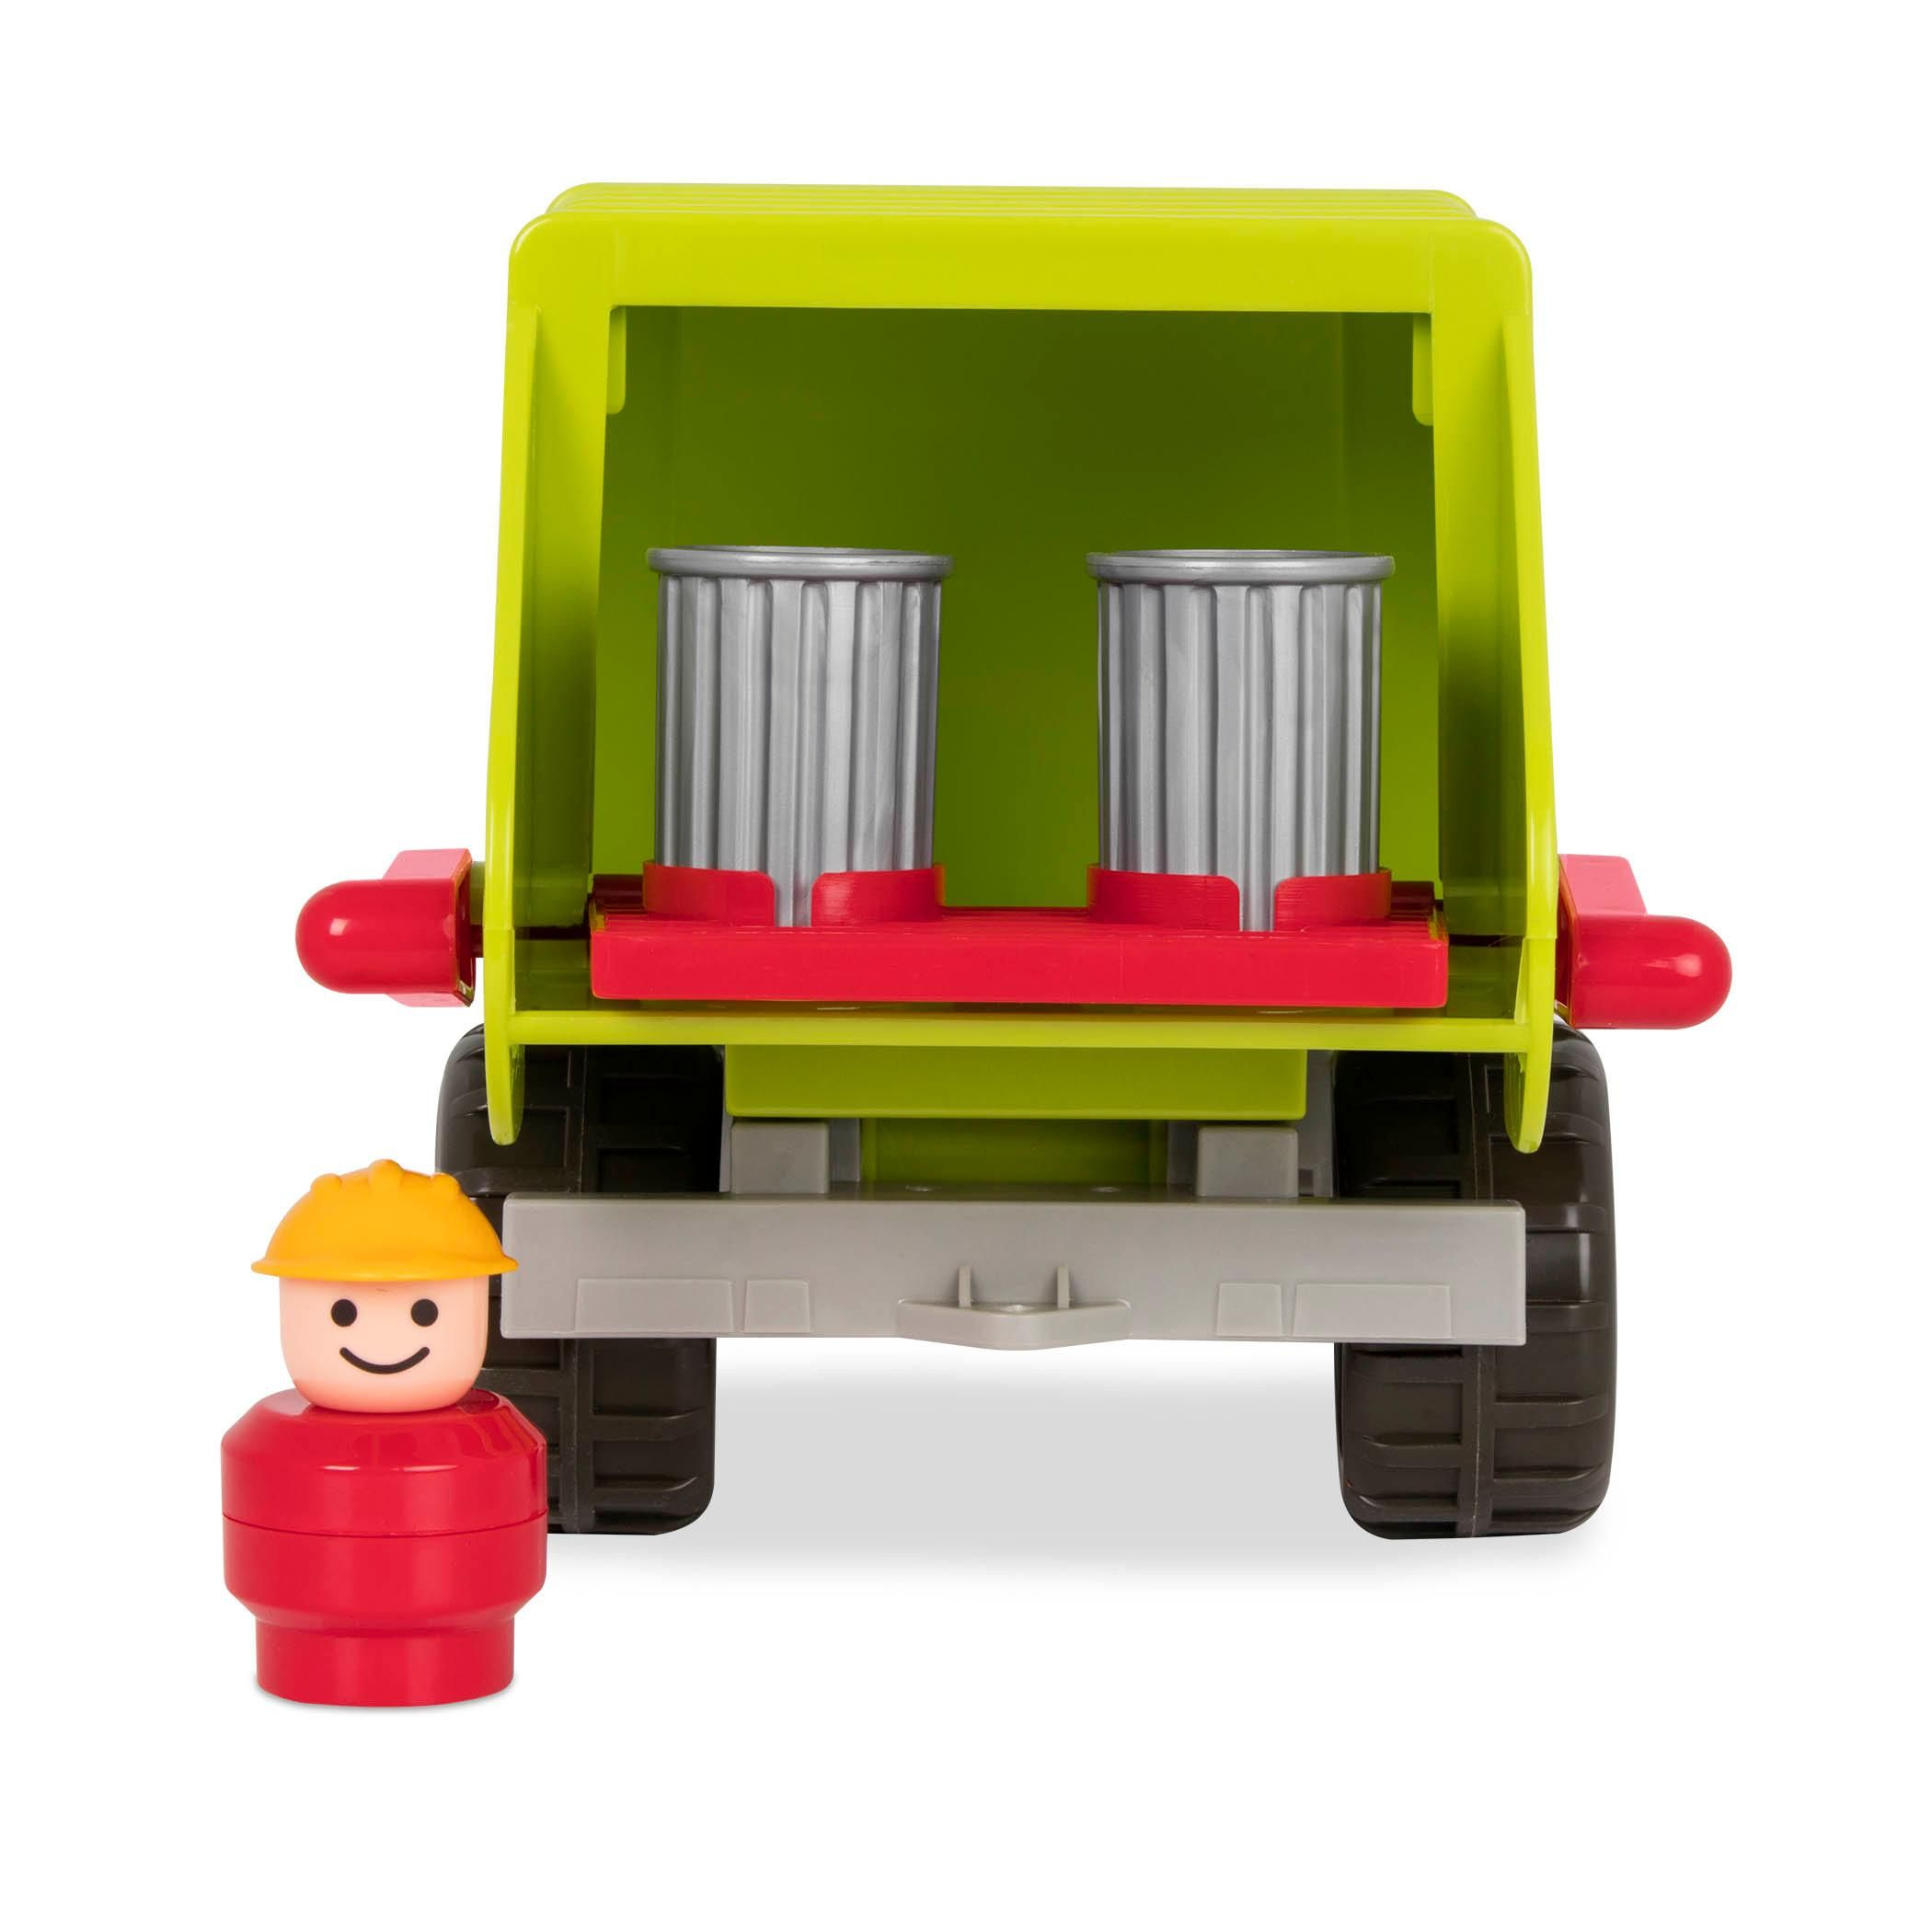 Battat Toy Garbage Truck Toys & Games